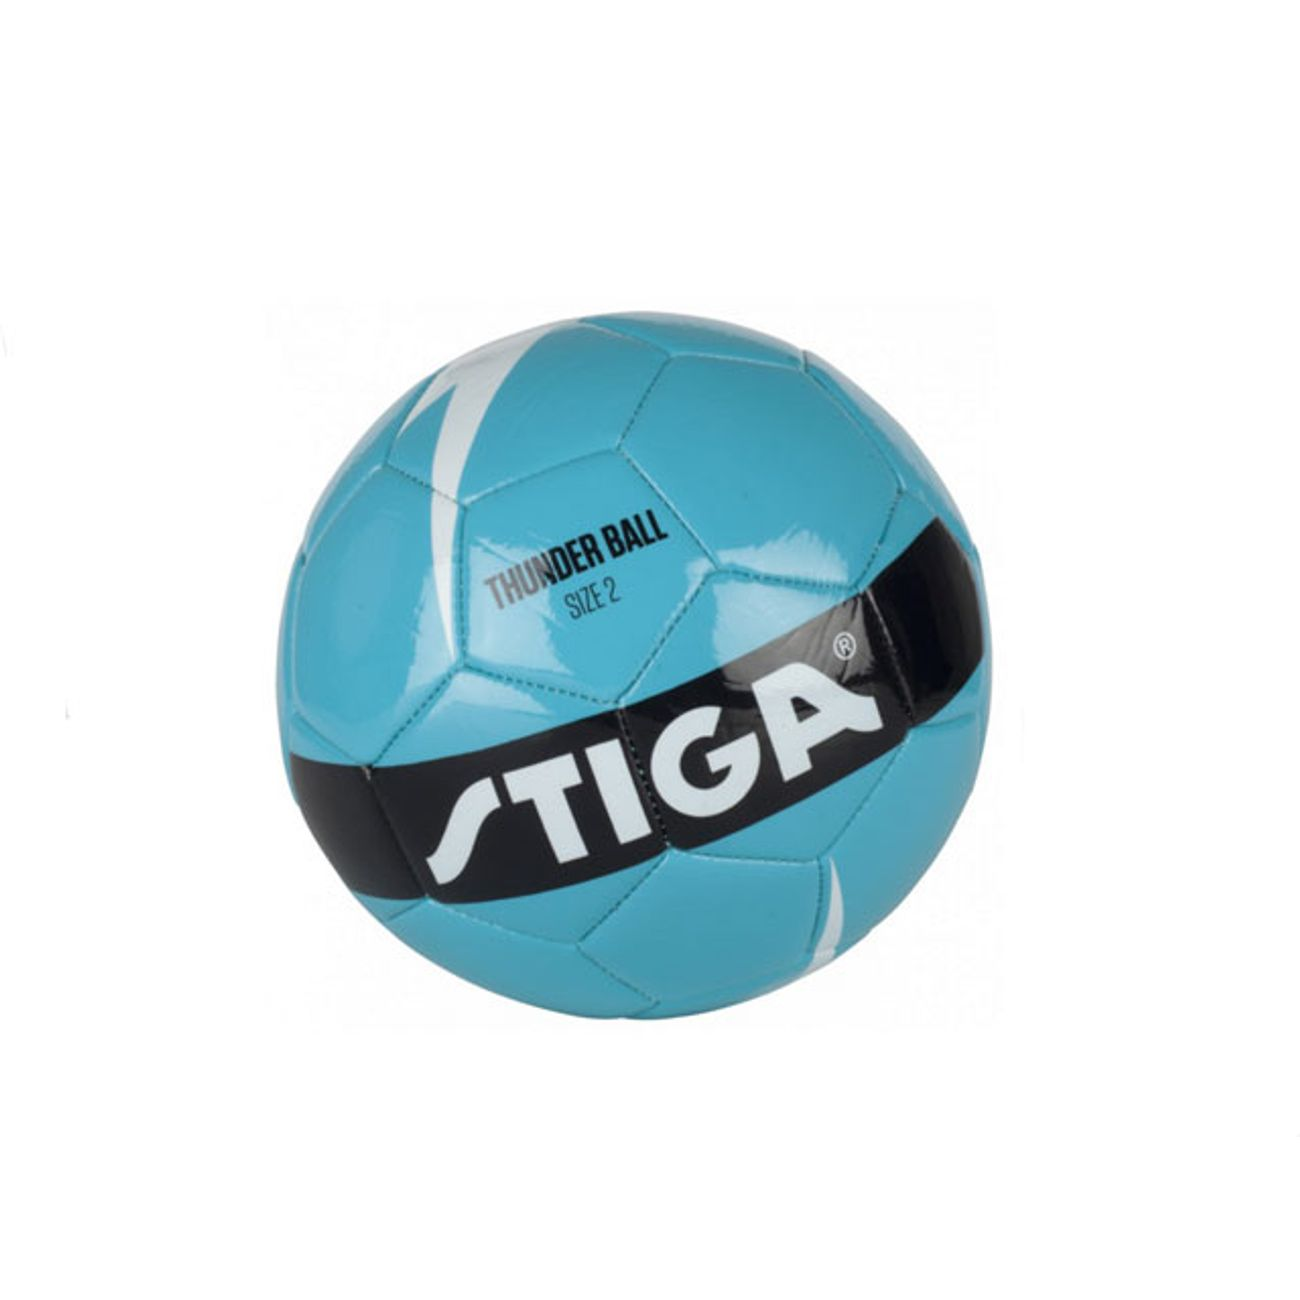 Football  STIGA STIGA Football ball Thunder 2